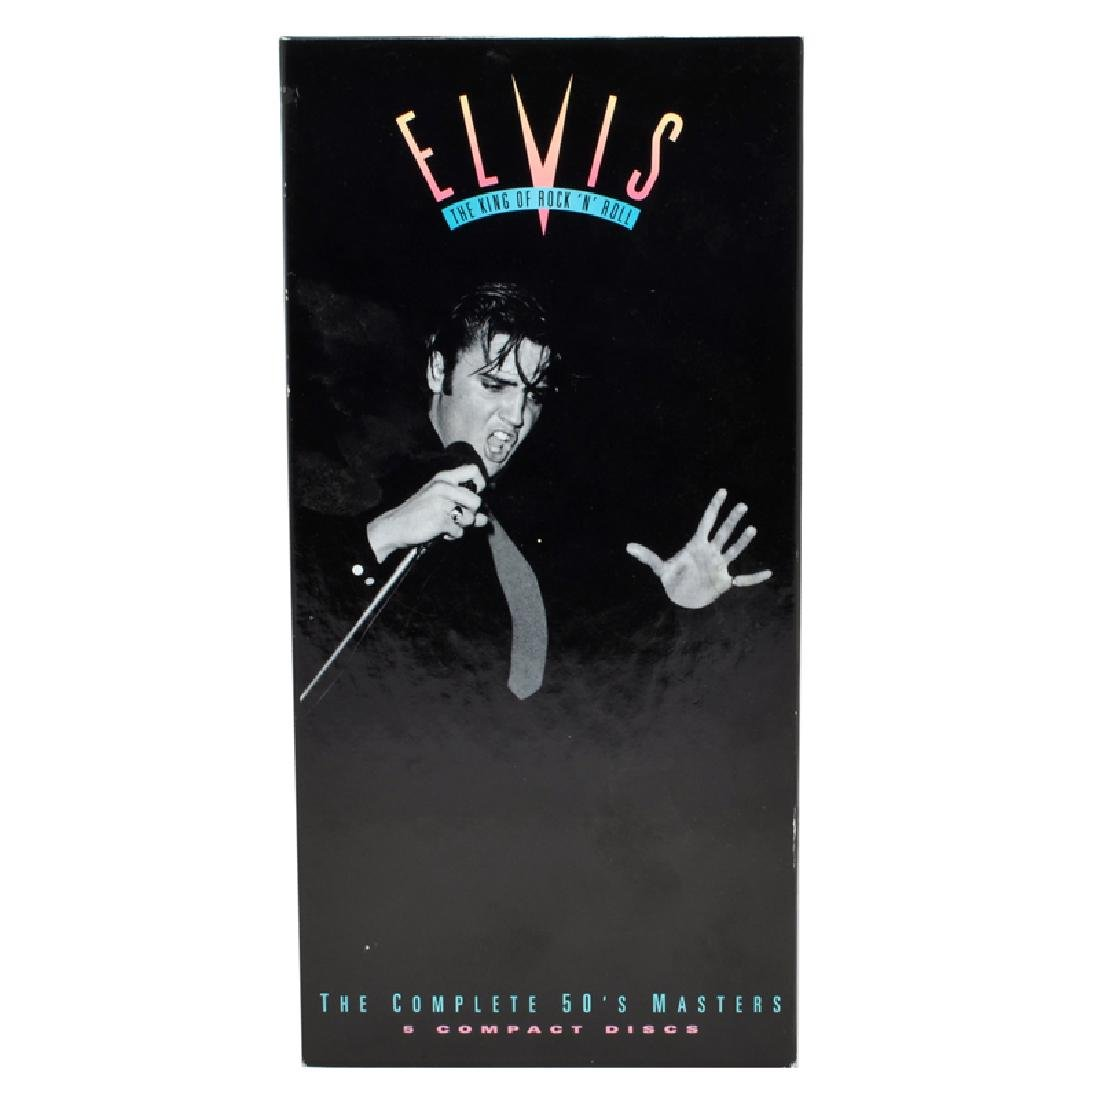 Elvis: The King Of Rock 'N' Roll: The Complete 50's